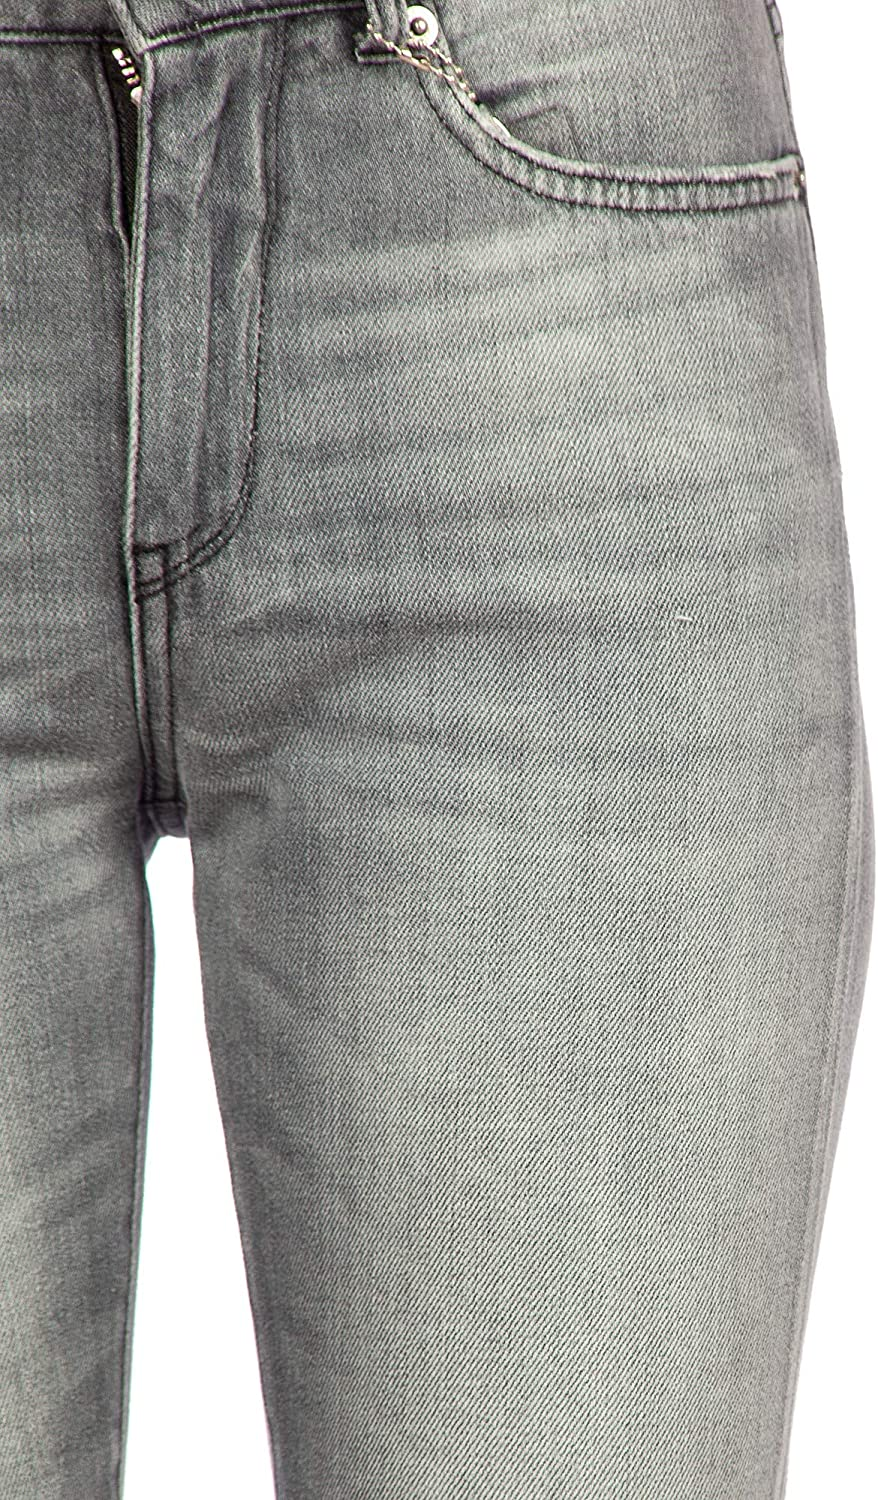 Department 5 - Jeans - 350598 - Grey Grey